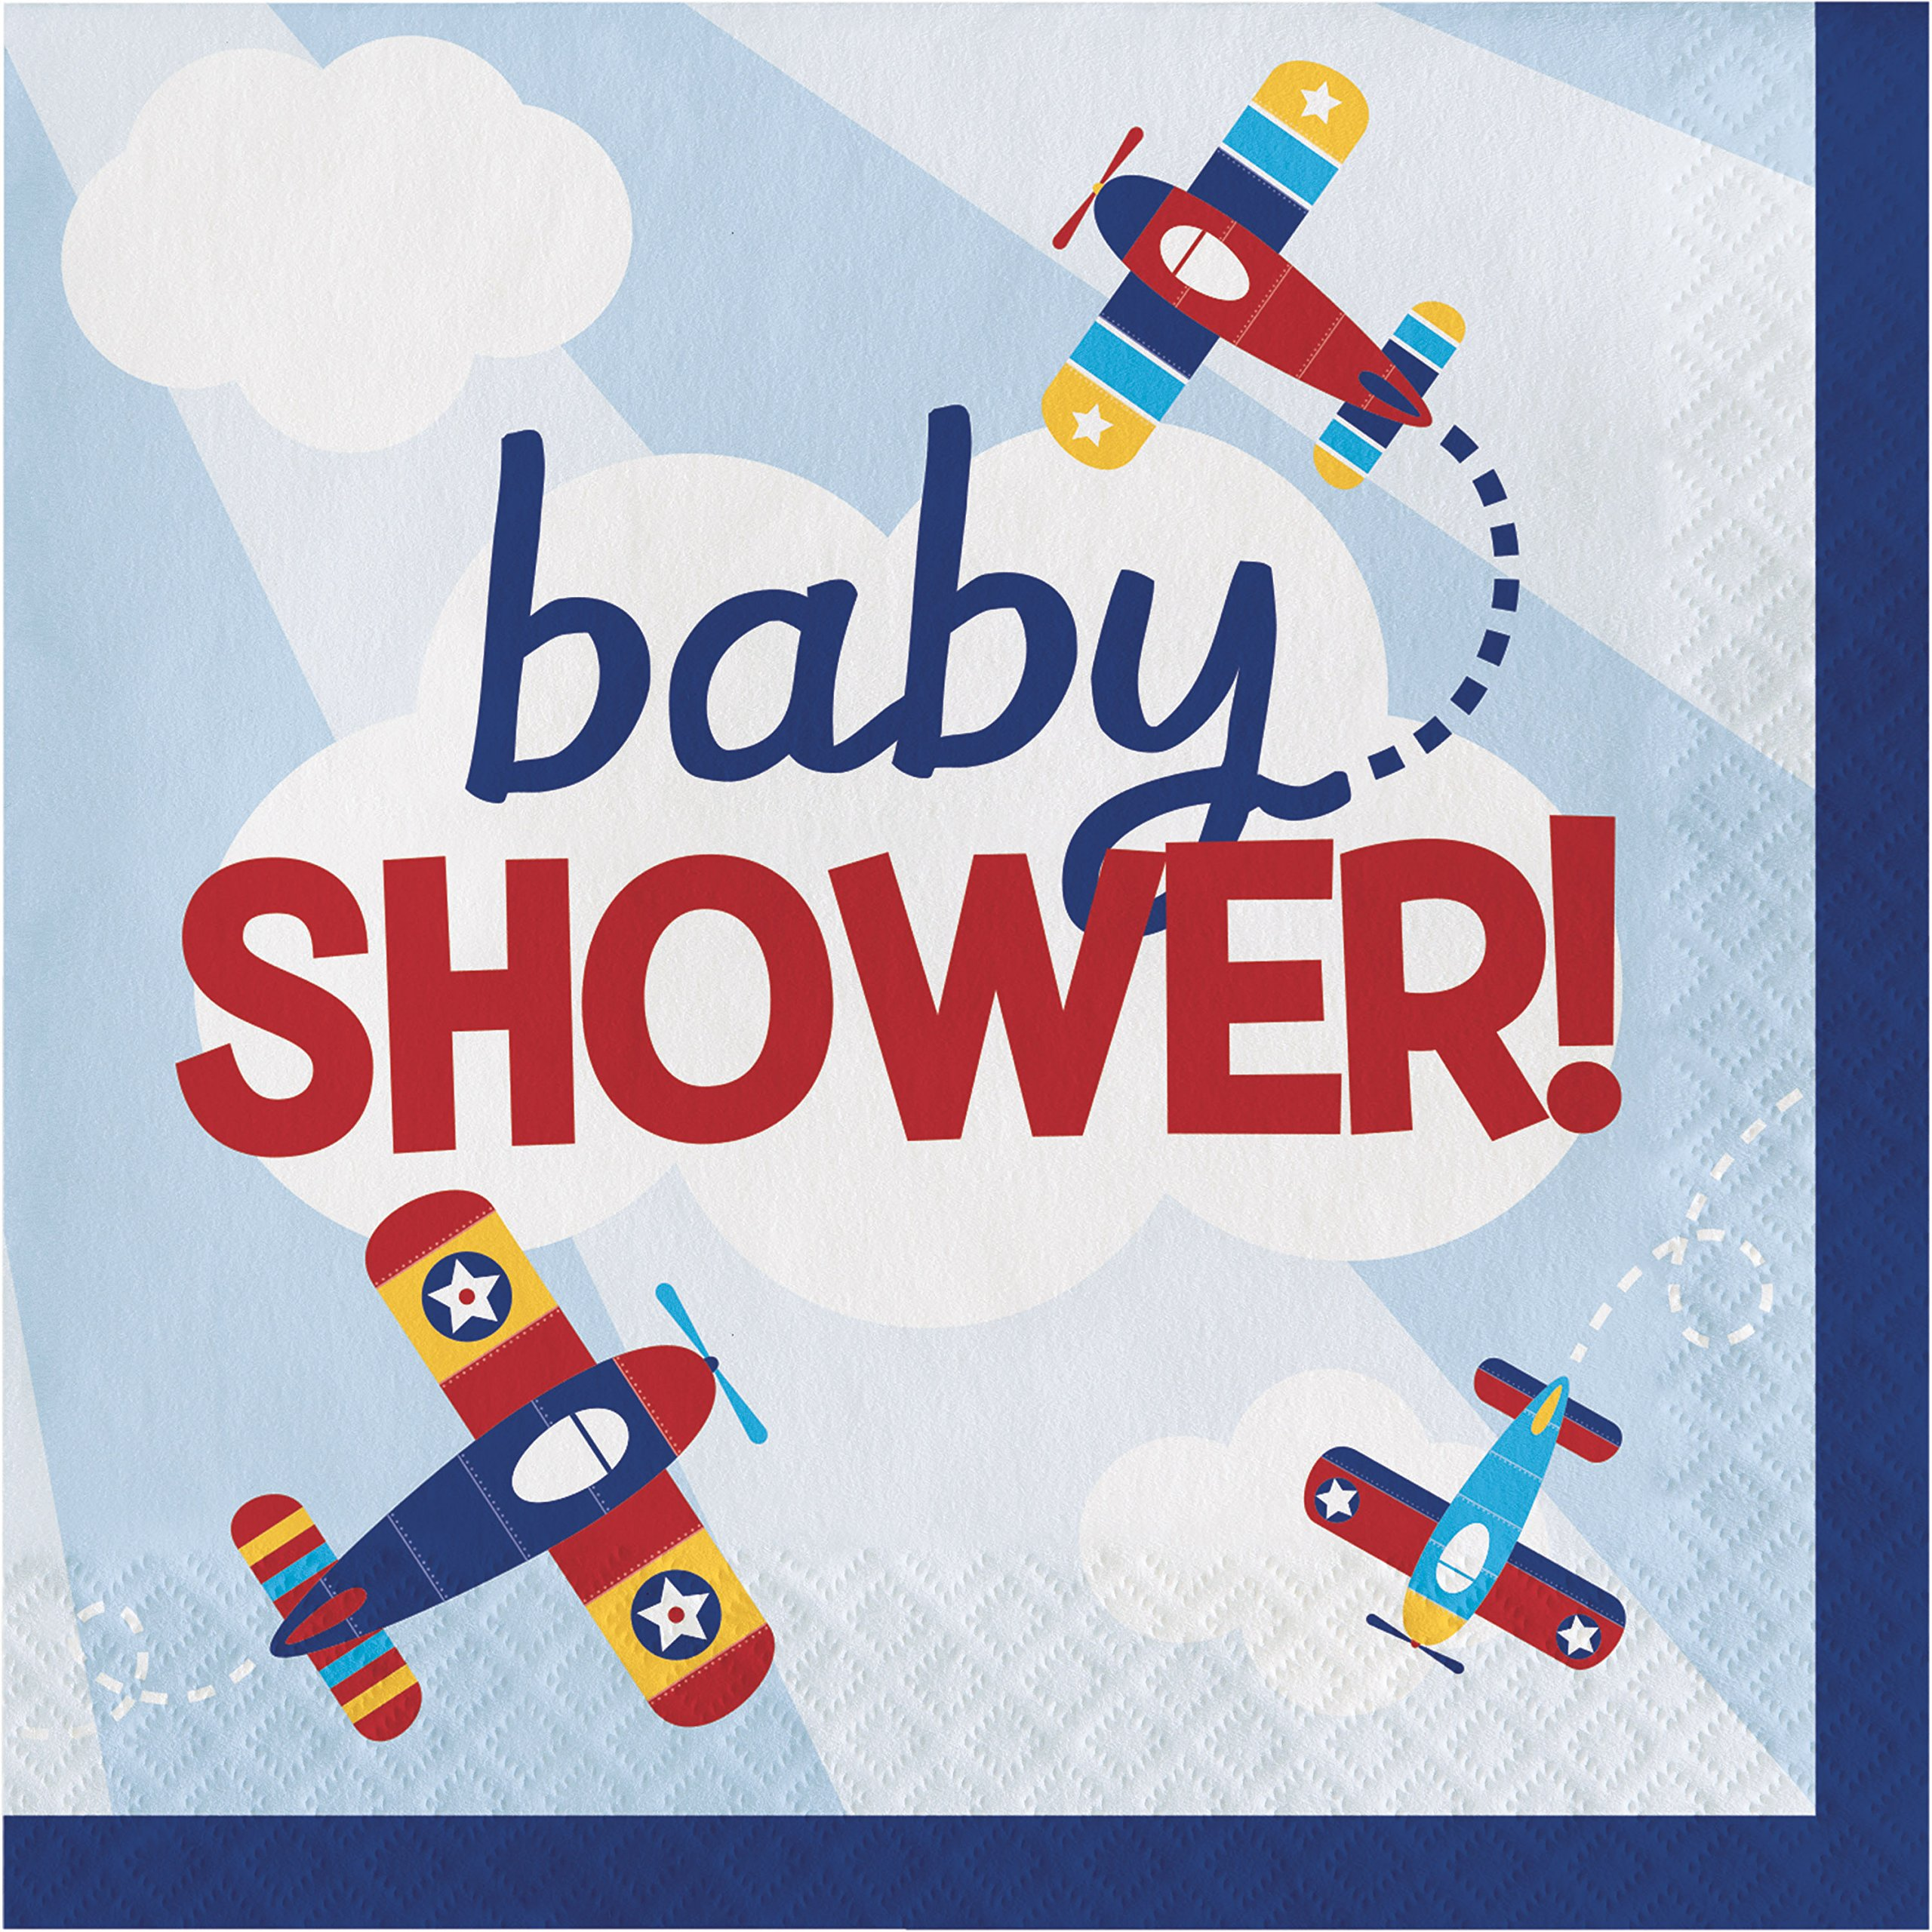 Toy Airplane Baby Shower Napkins, 48 ct by Creative Converting